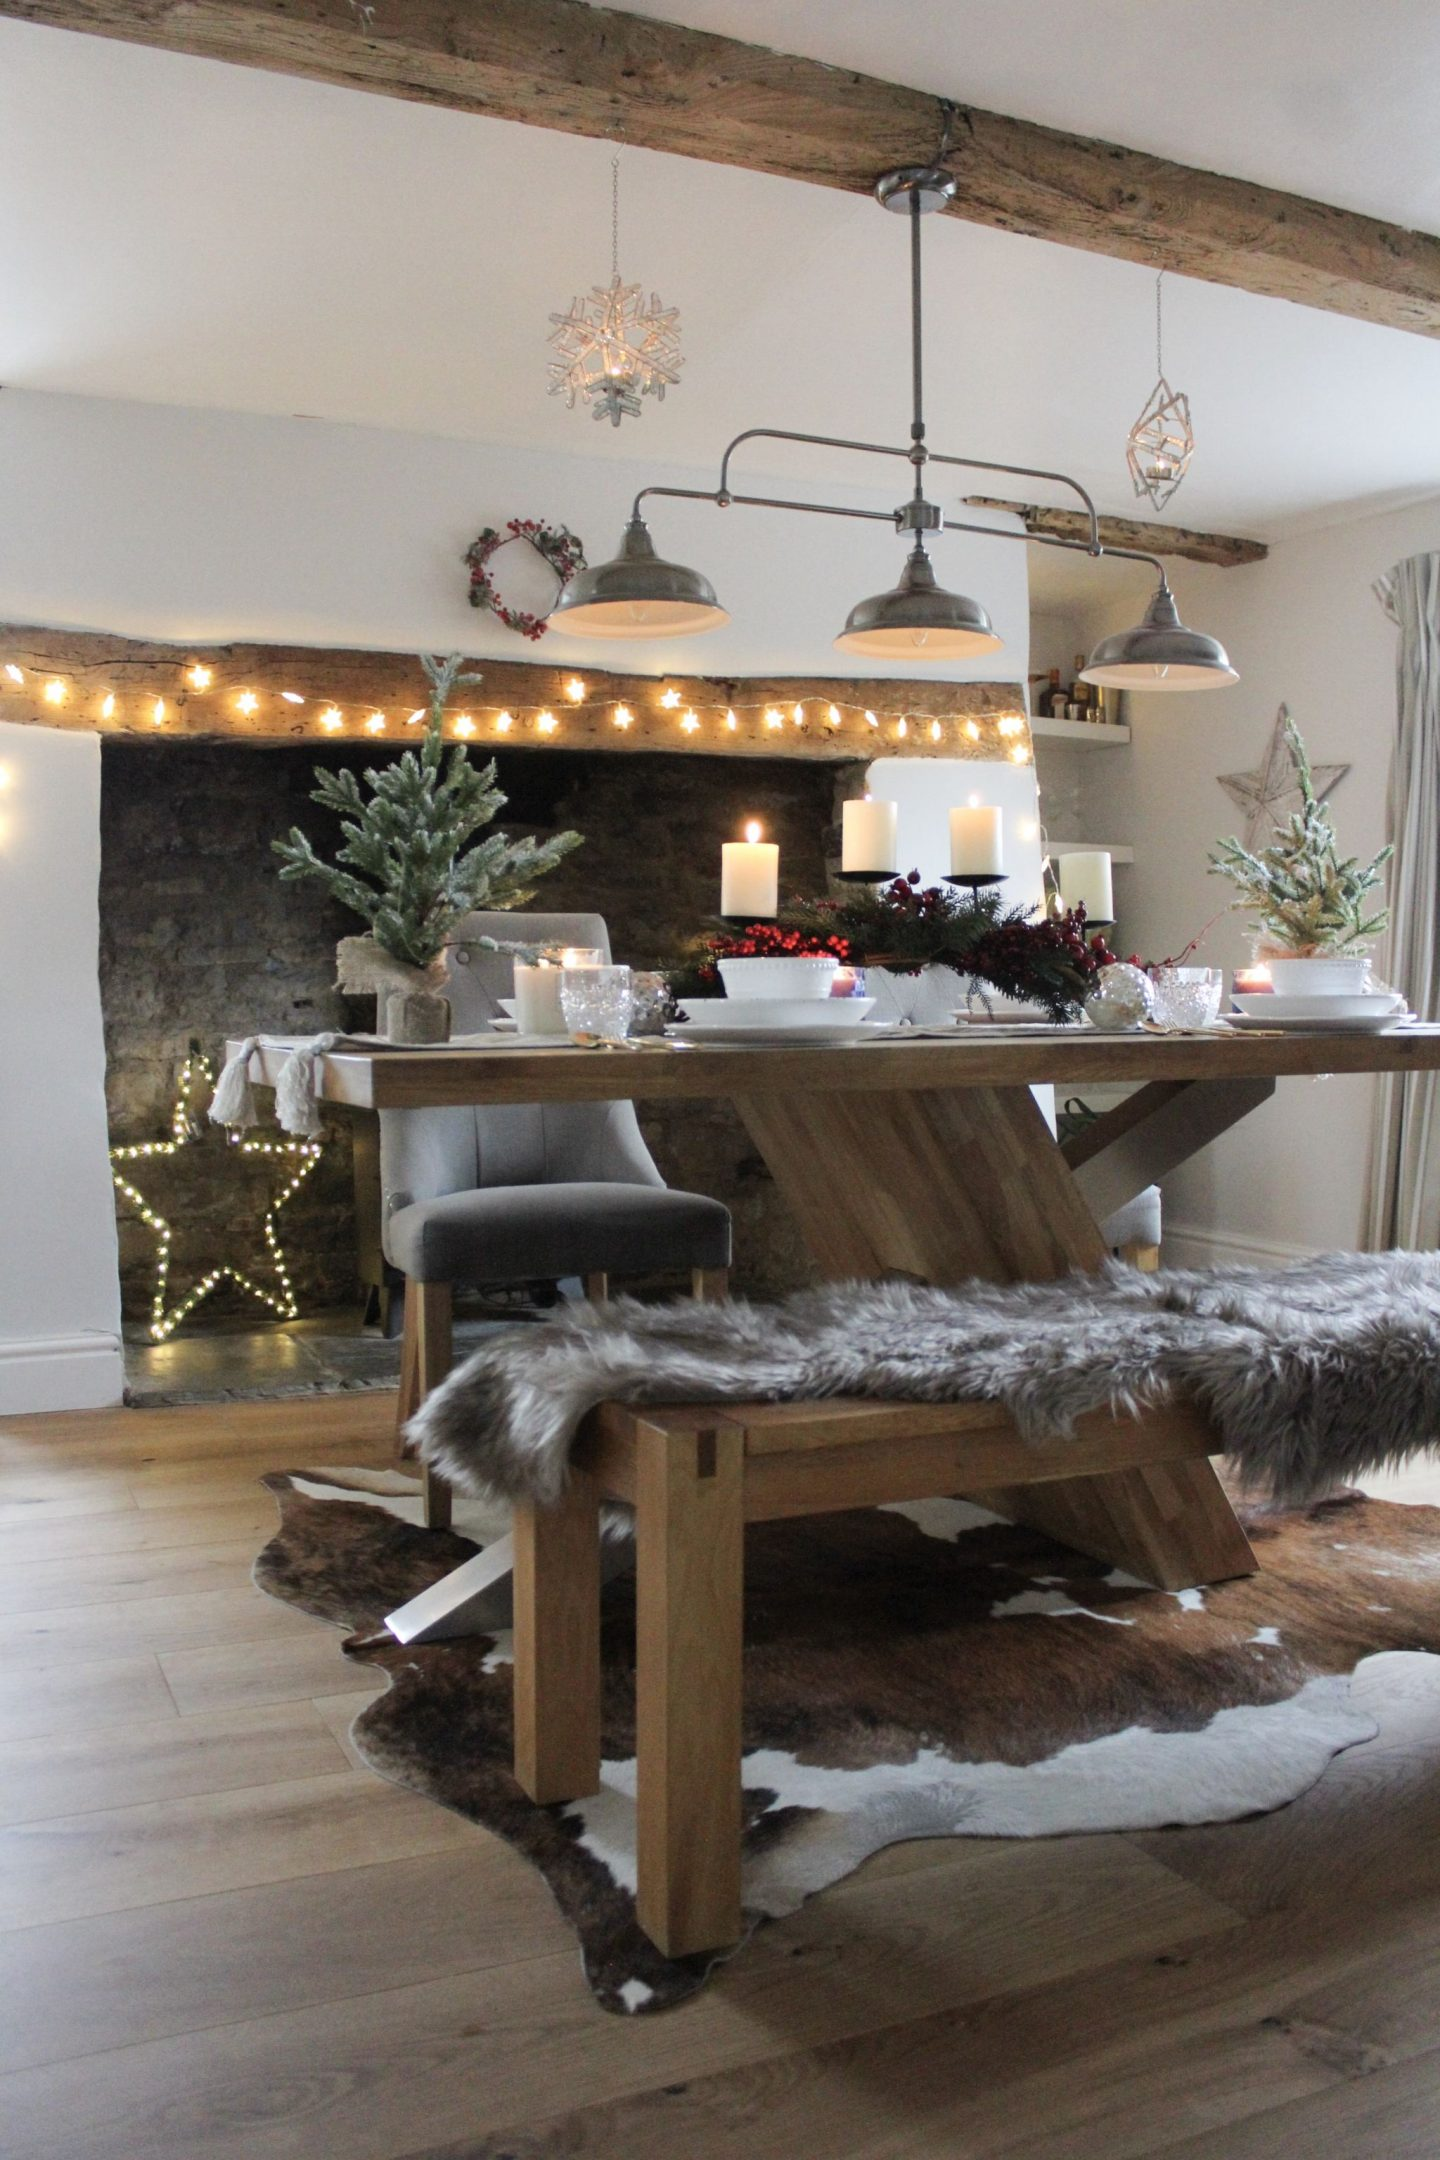 Creating A Festive Table With Homesense / AD